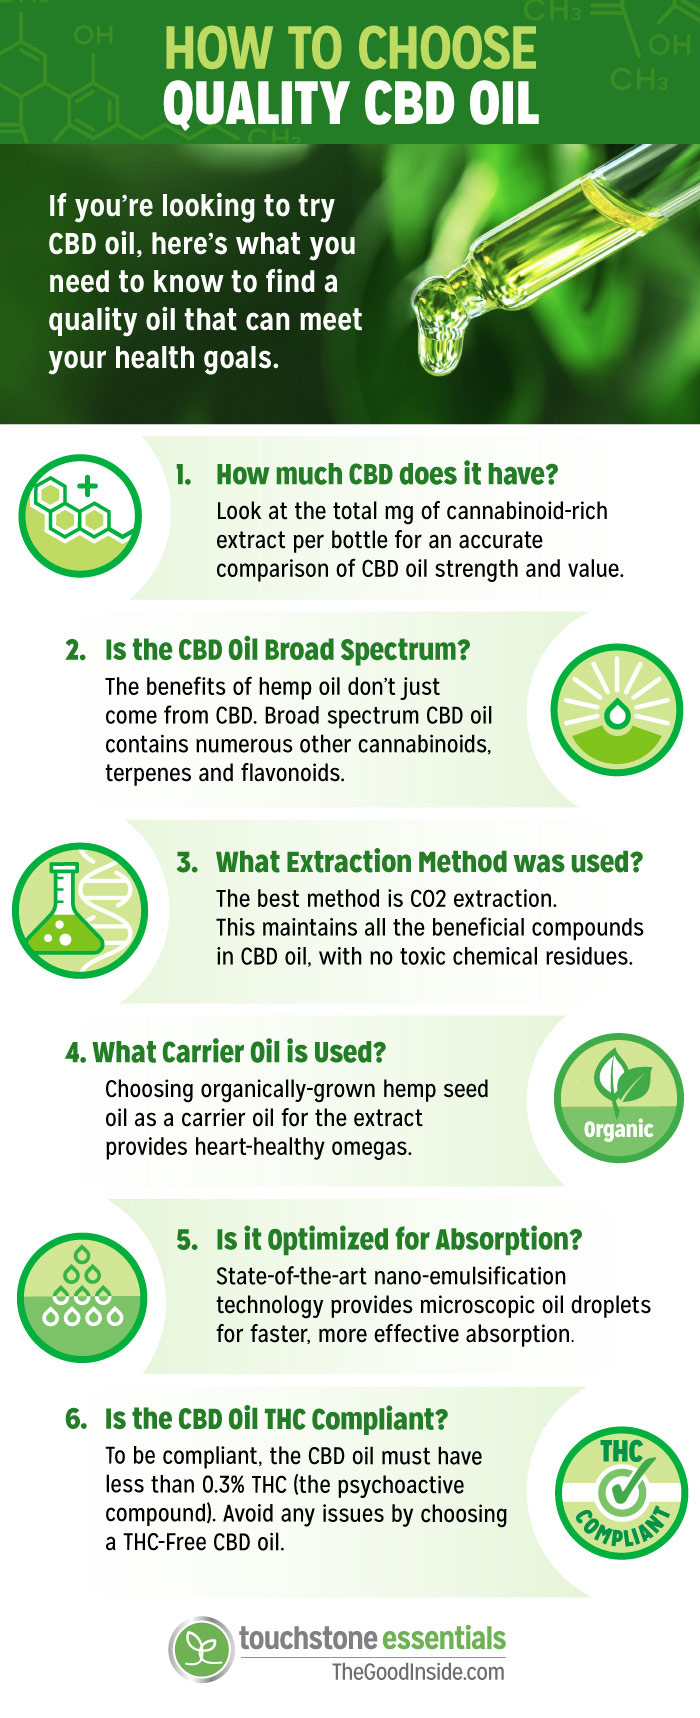 How To Choose Quality CBD Oil